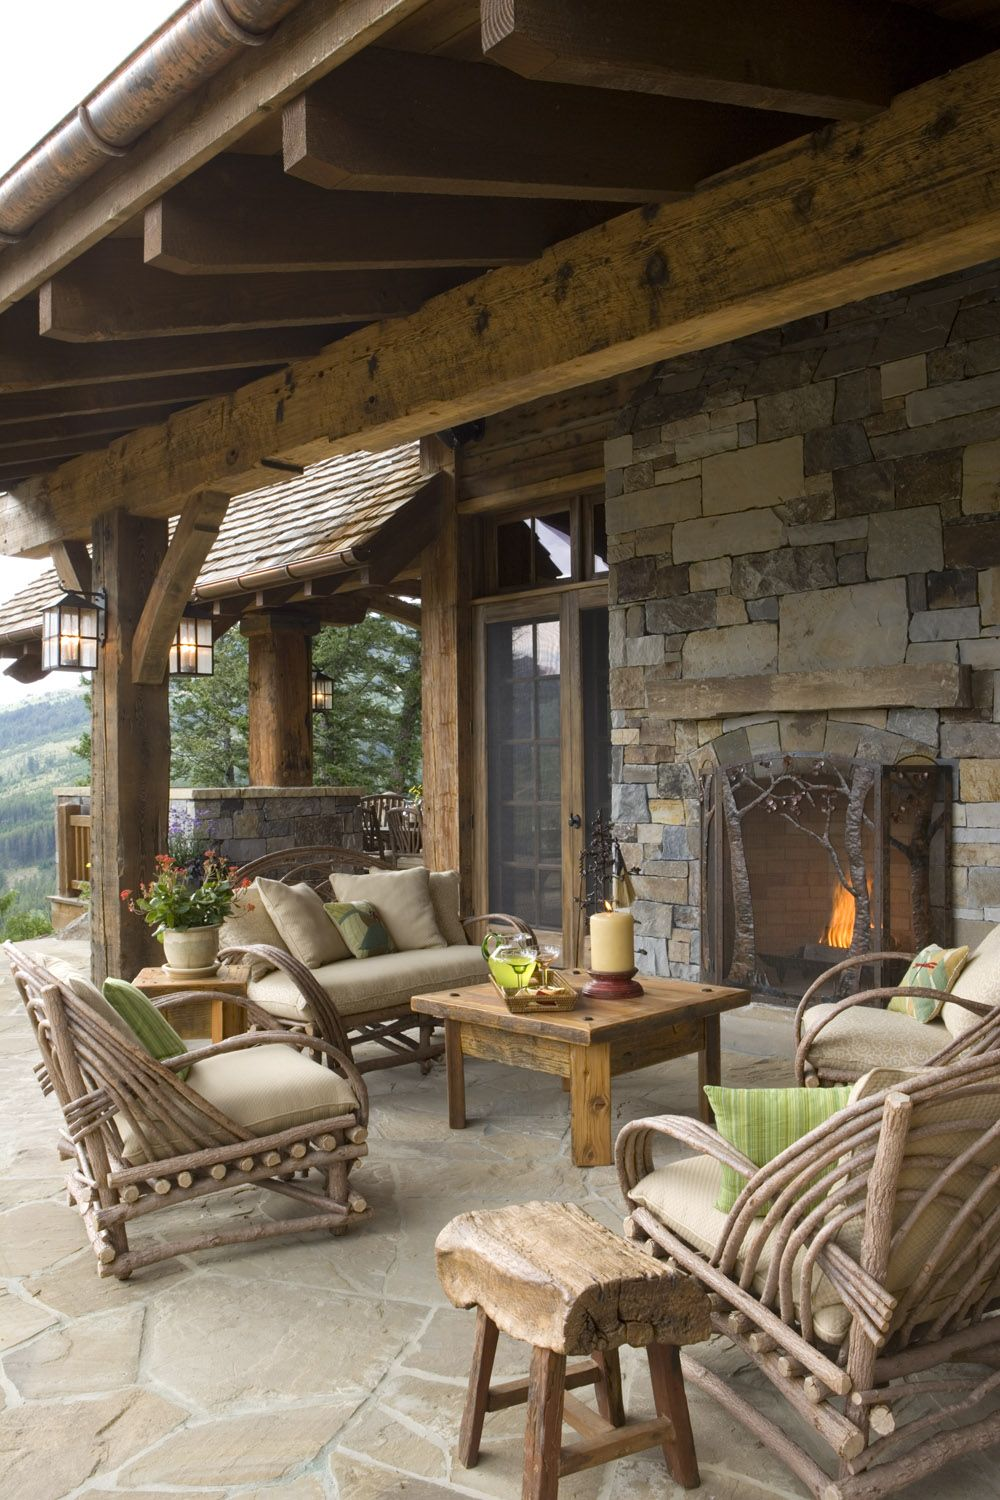 Rustic covered patio ideas - A Beautiful Covered Patio Fireplace For A Mountain Country Home A Great Place To Gather Enjoy The Outdoors